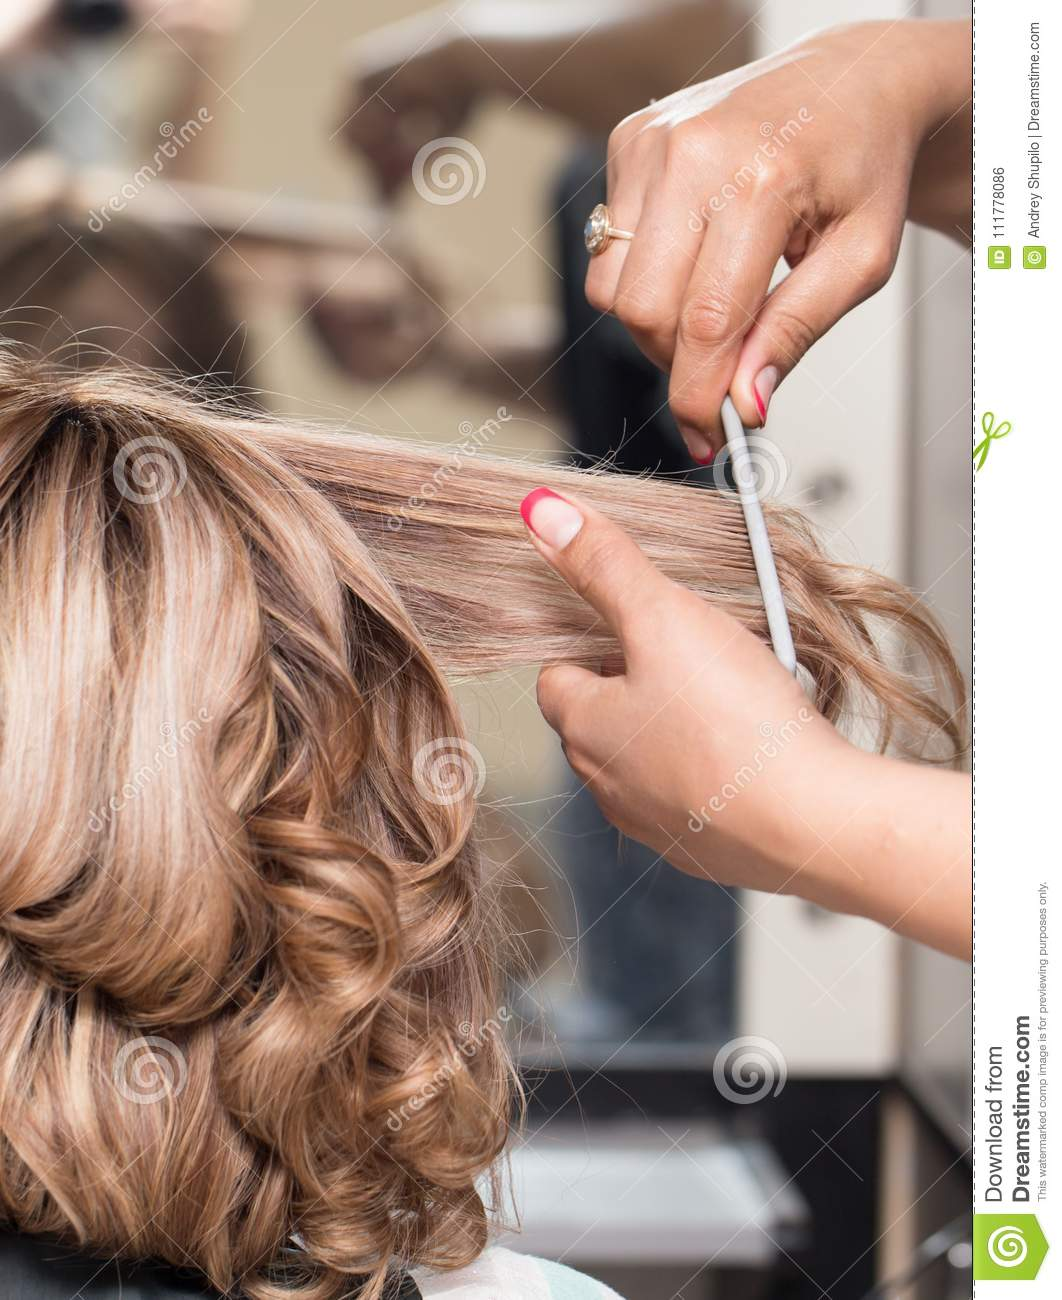 Female Hairstyles on curling in a beauty salon